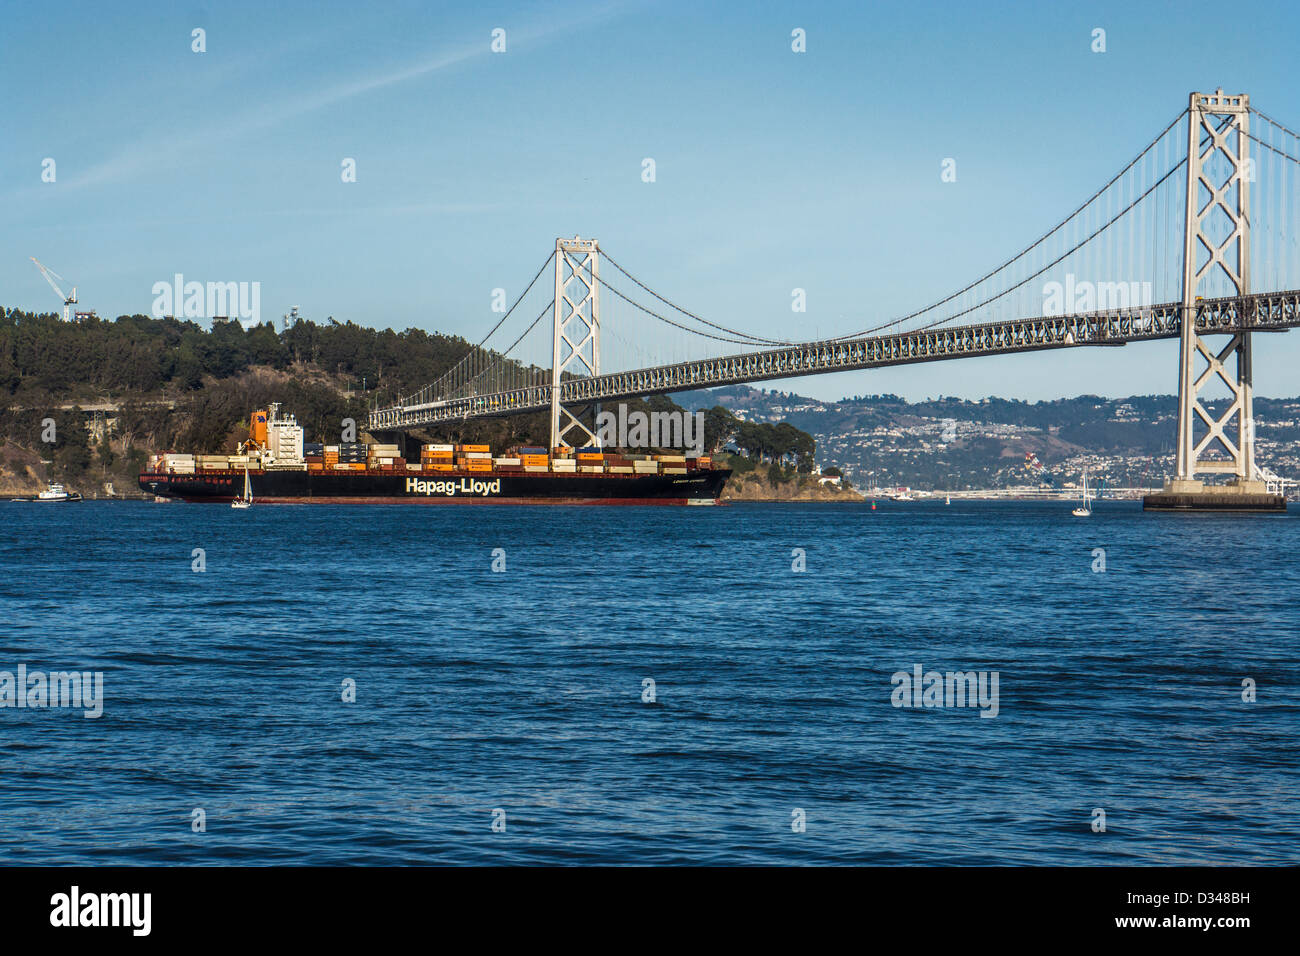 Container cargo ship passing under the Bay Bridge in San Francisco California - Stock Image